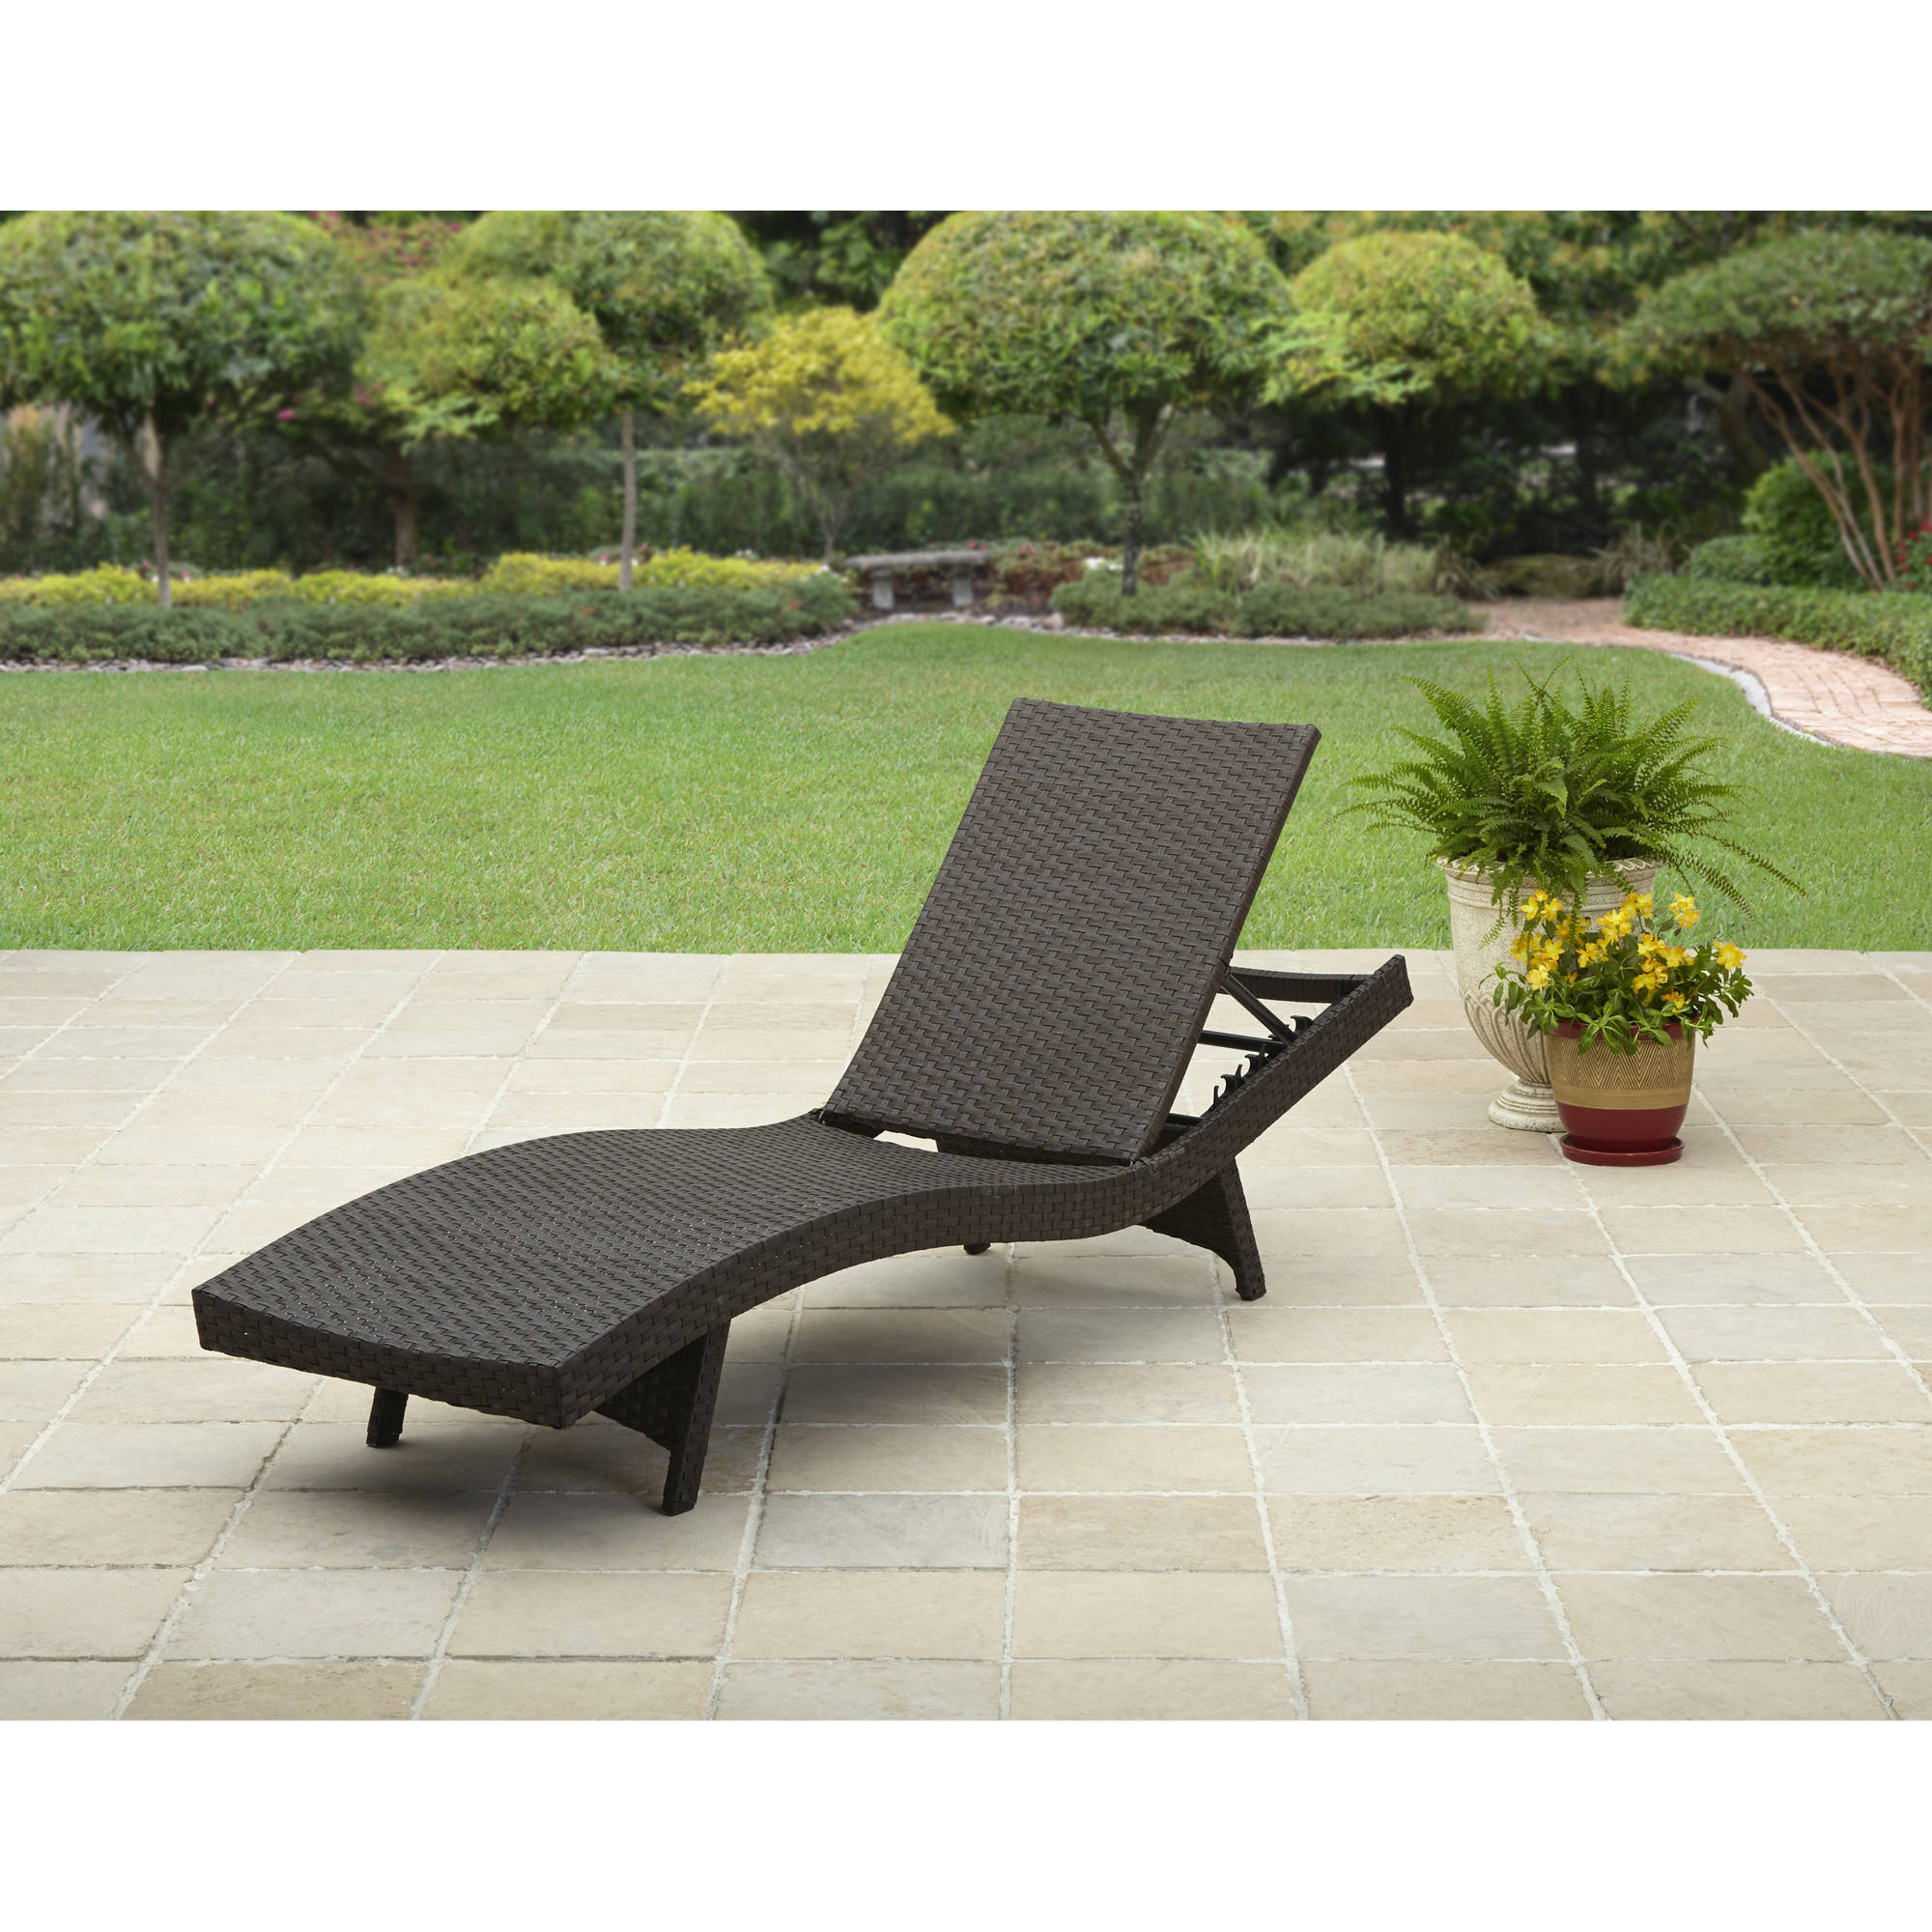 lawn furniture patio furniture - walmart.com UCZBYRC